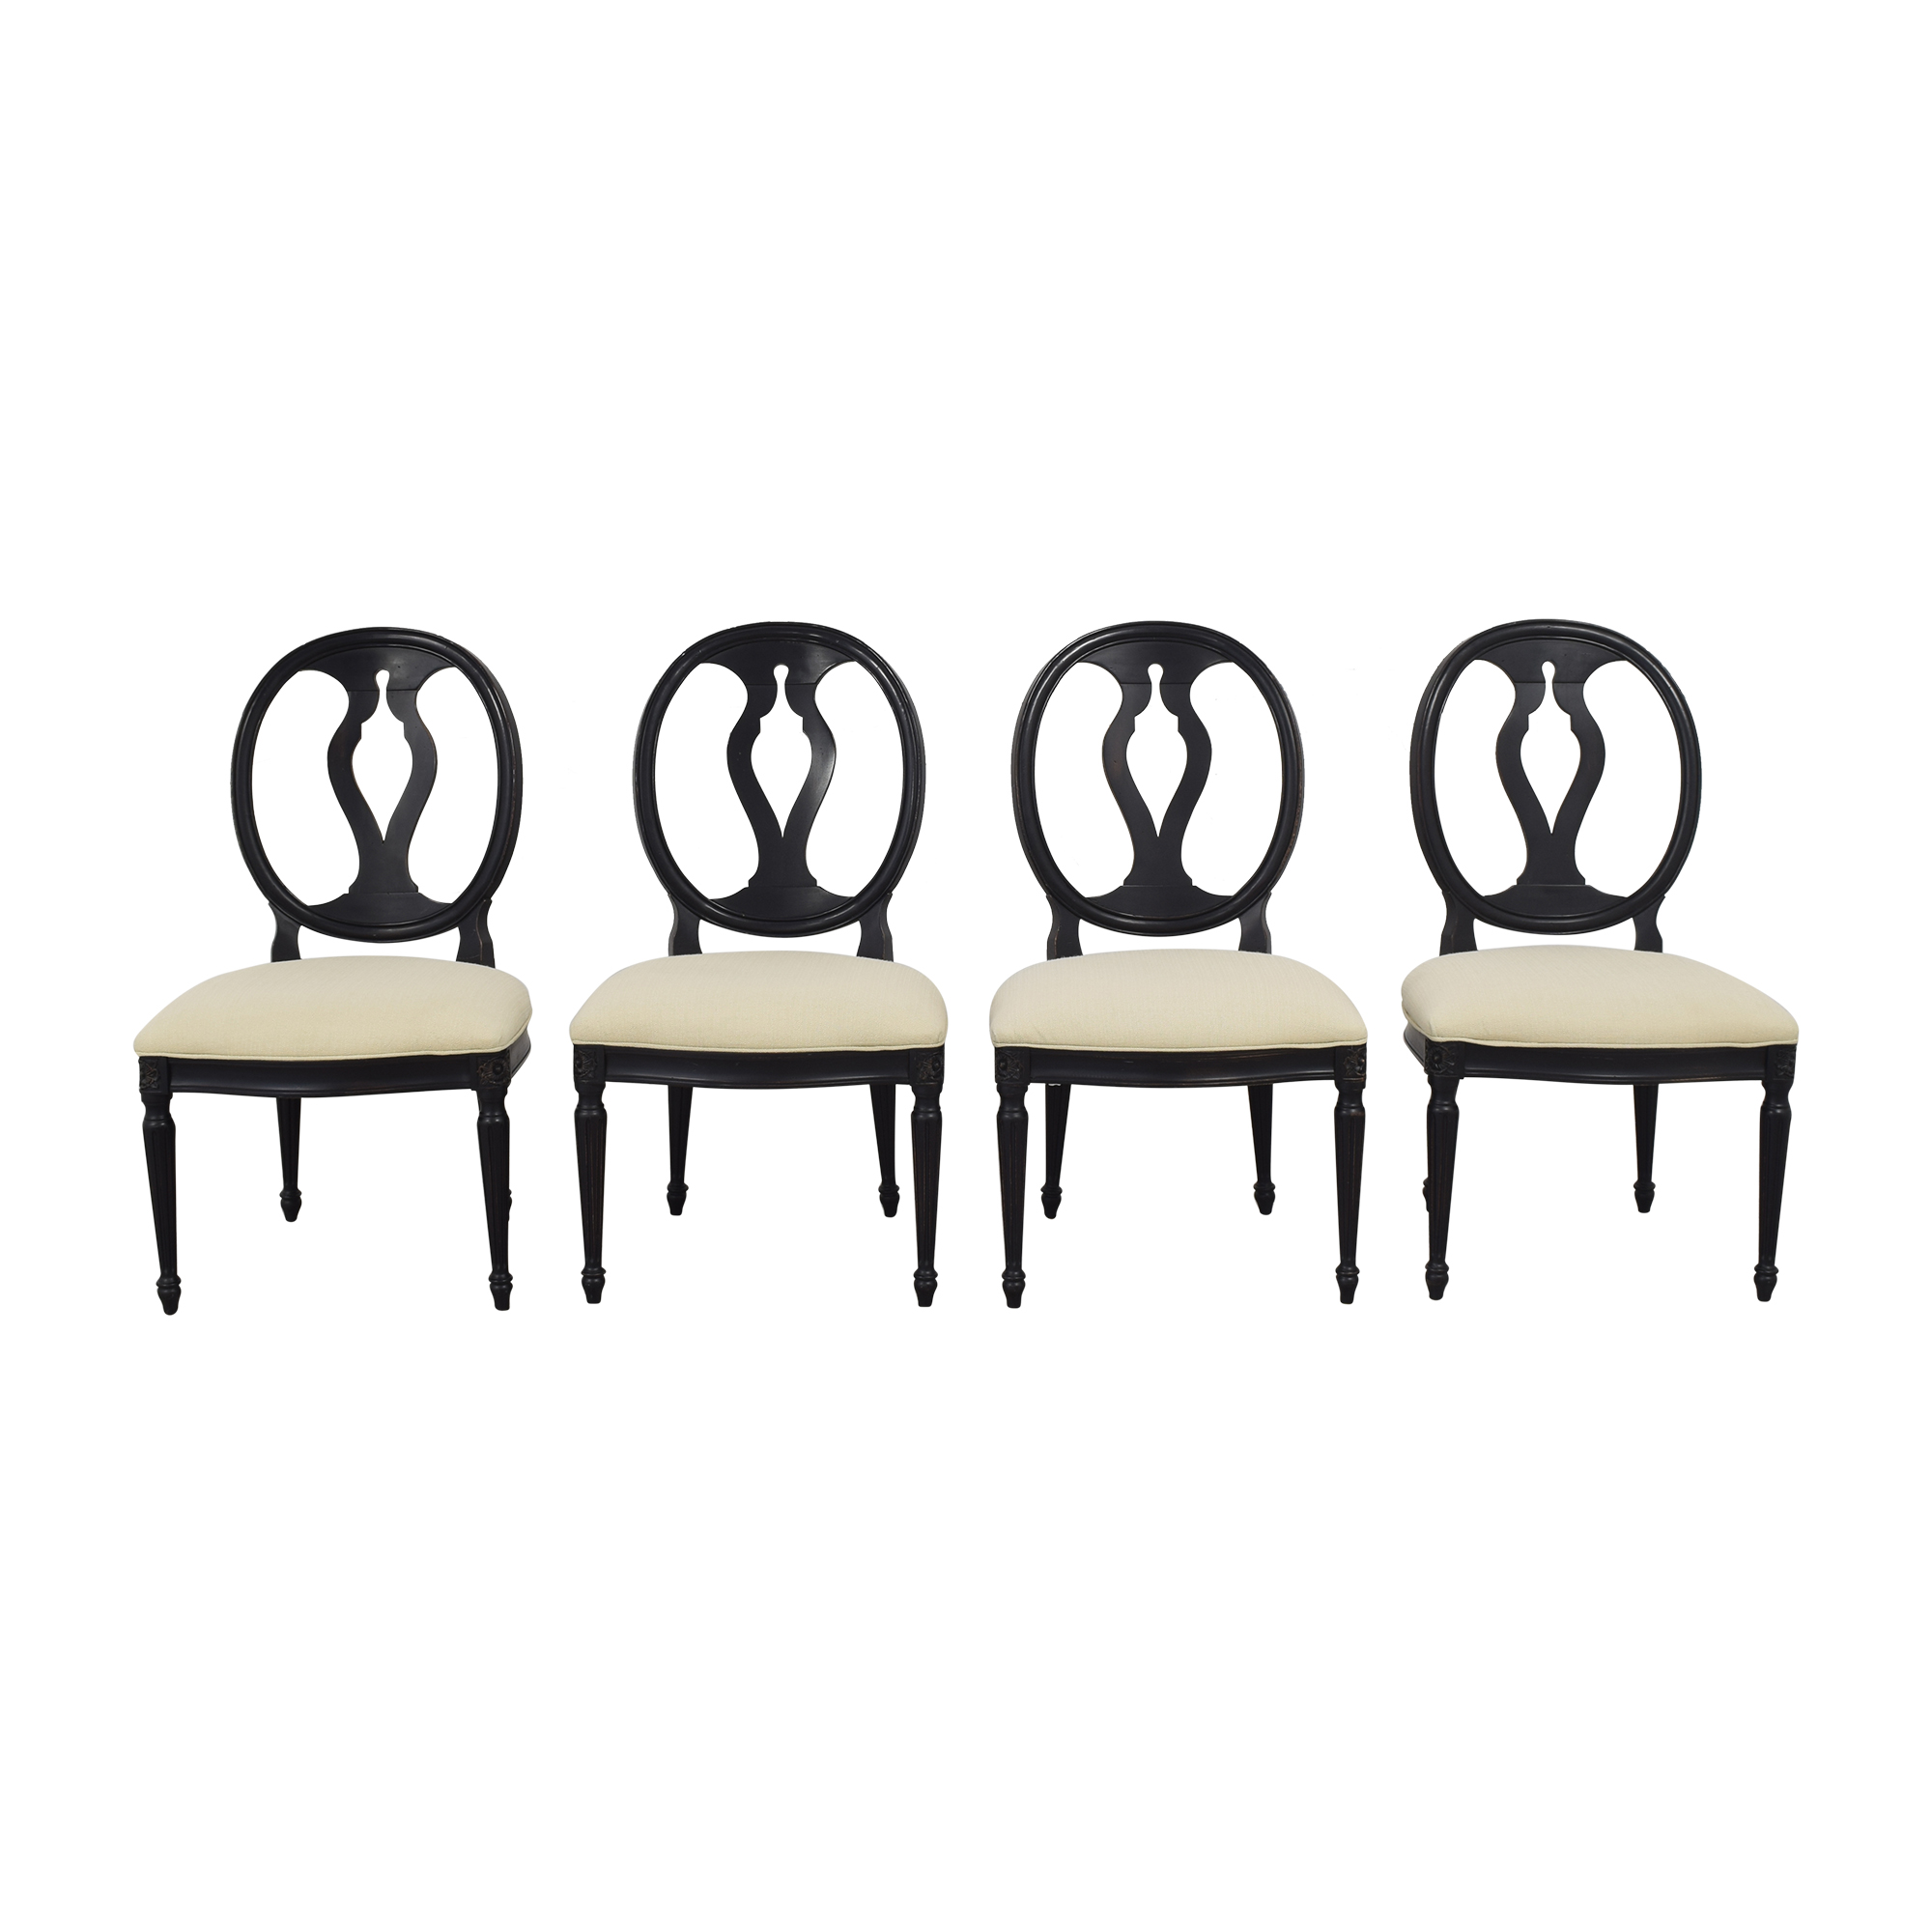 Ethan Allen Margaux Dining Side Chairs / Chairs